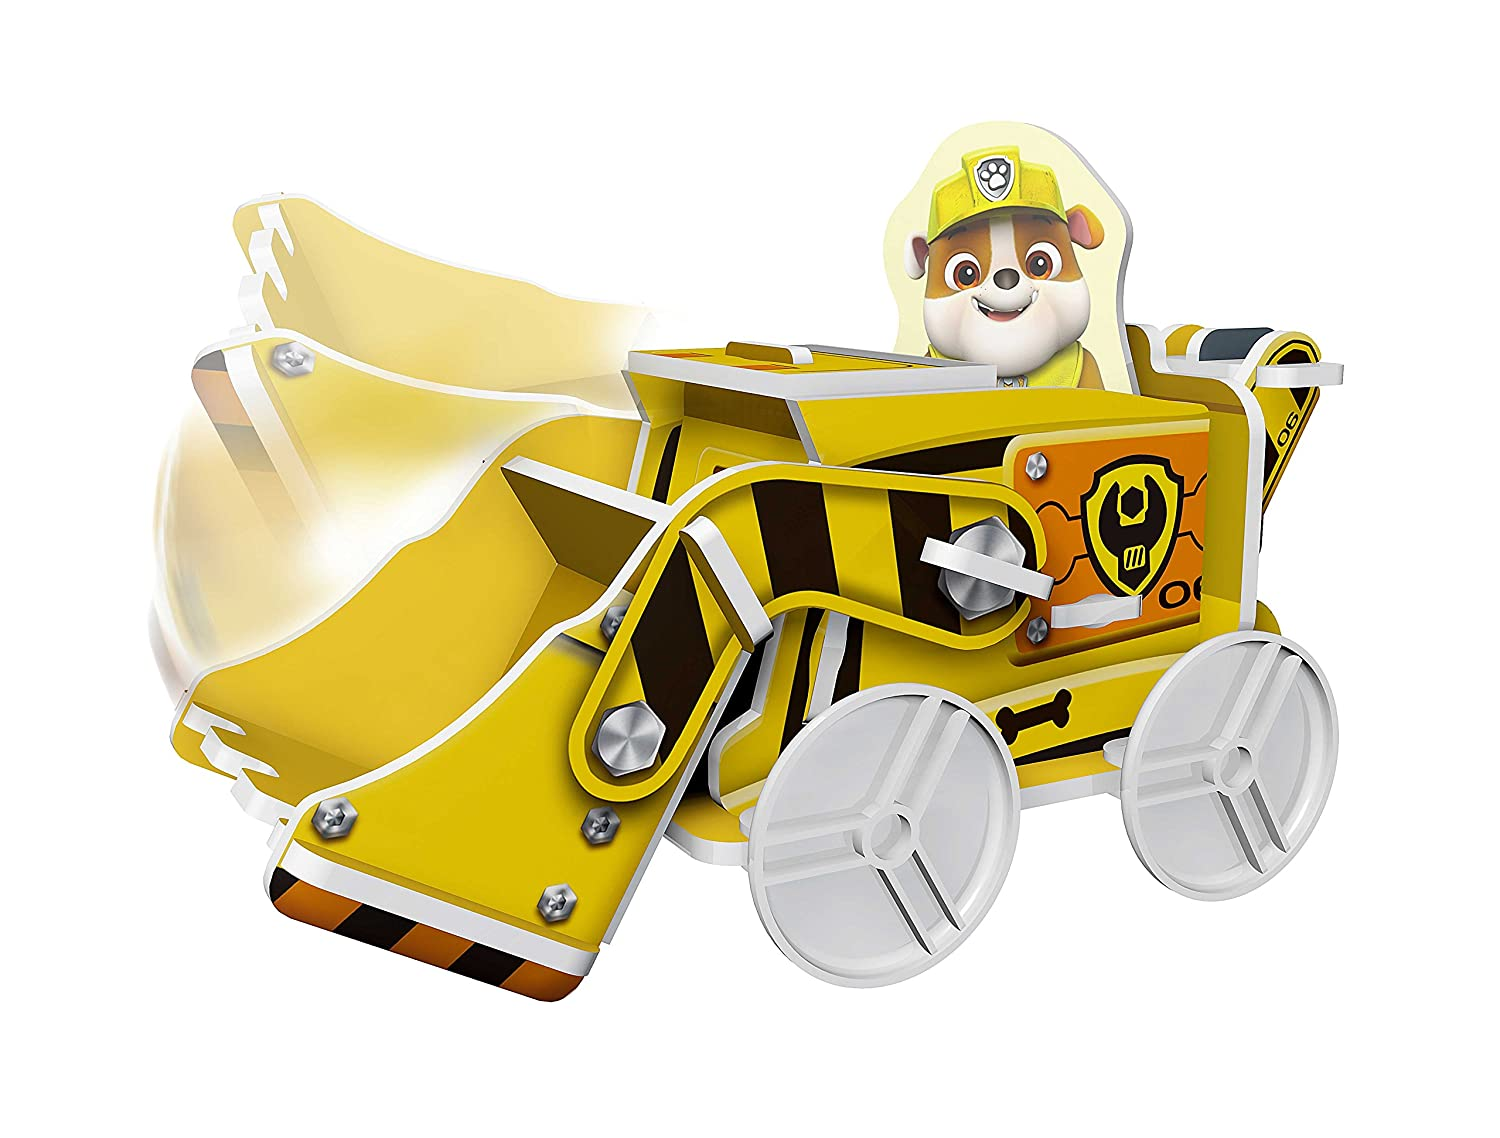 10 x 14 Nickelodeon Build A Story 13012 Paw Patrol Rescue Vehicles 2 Assorted Stem Building Playset Multi-Colored 10 x 14 Jupiter Creations Inc